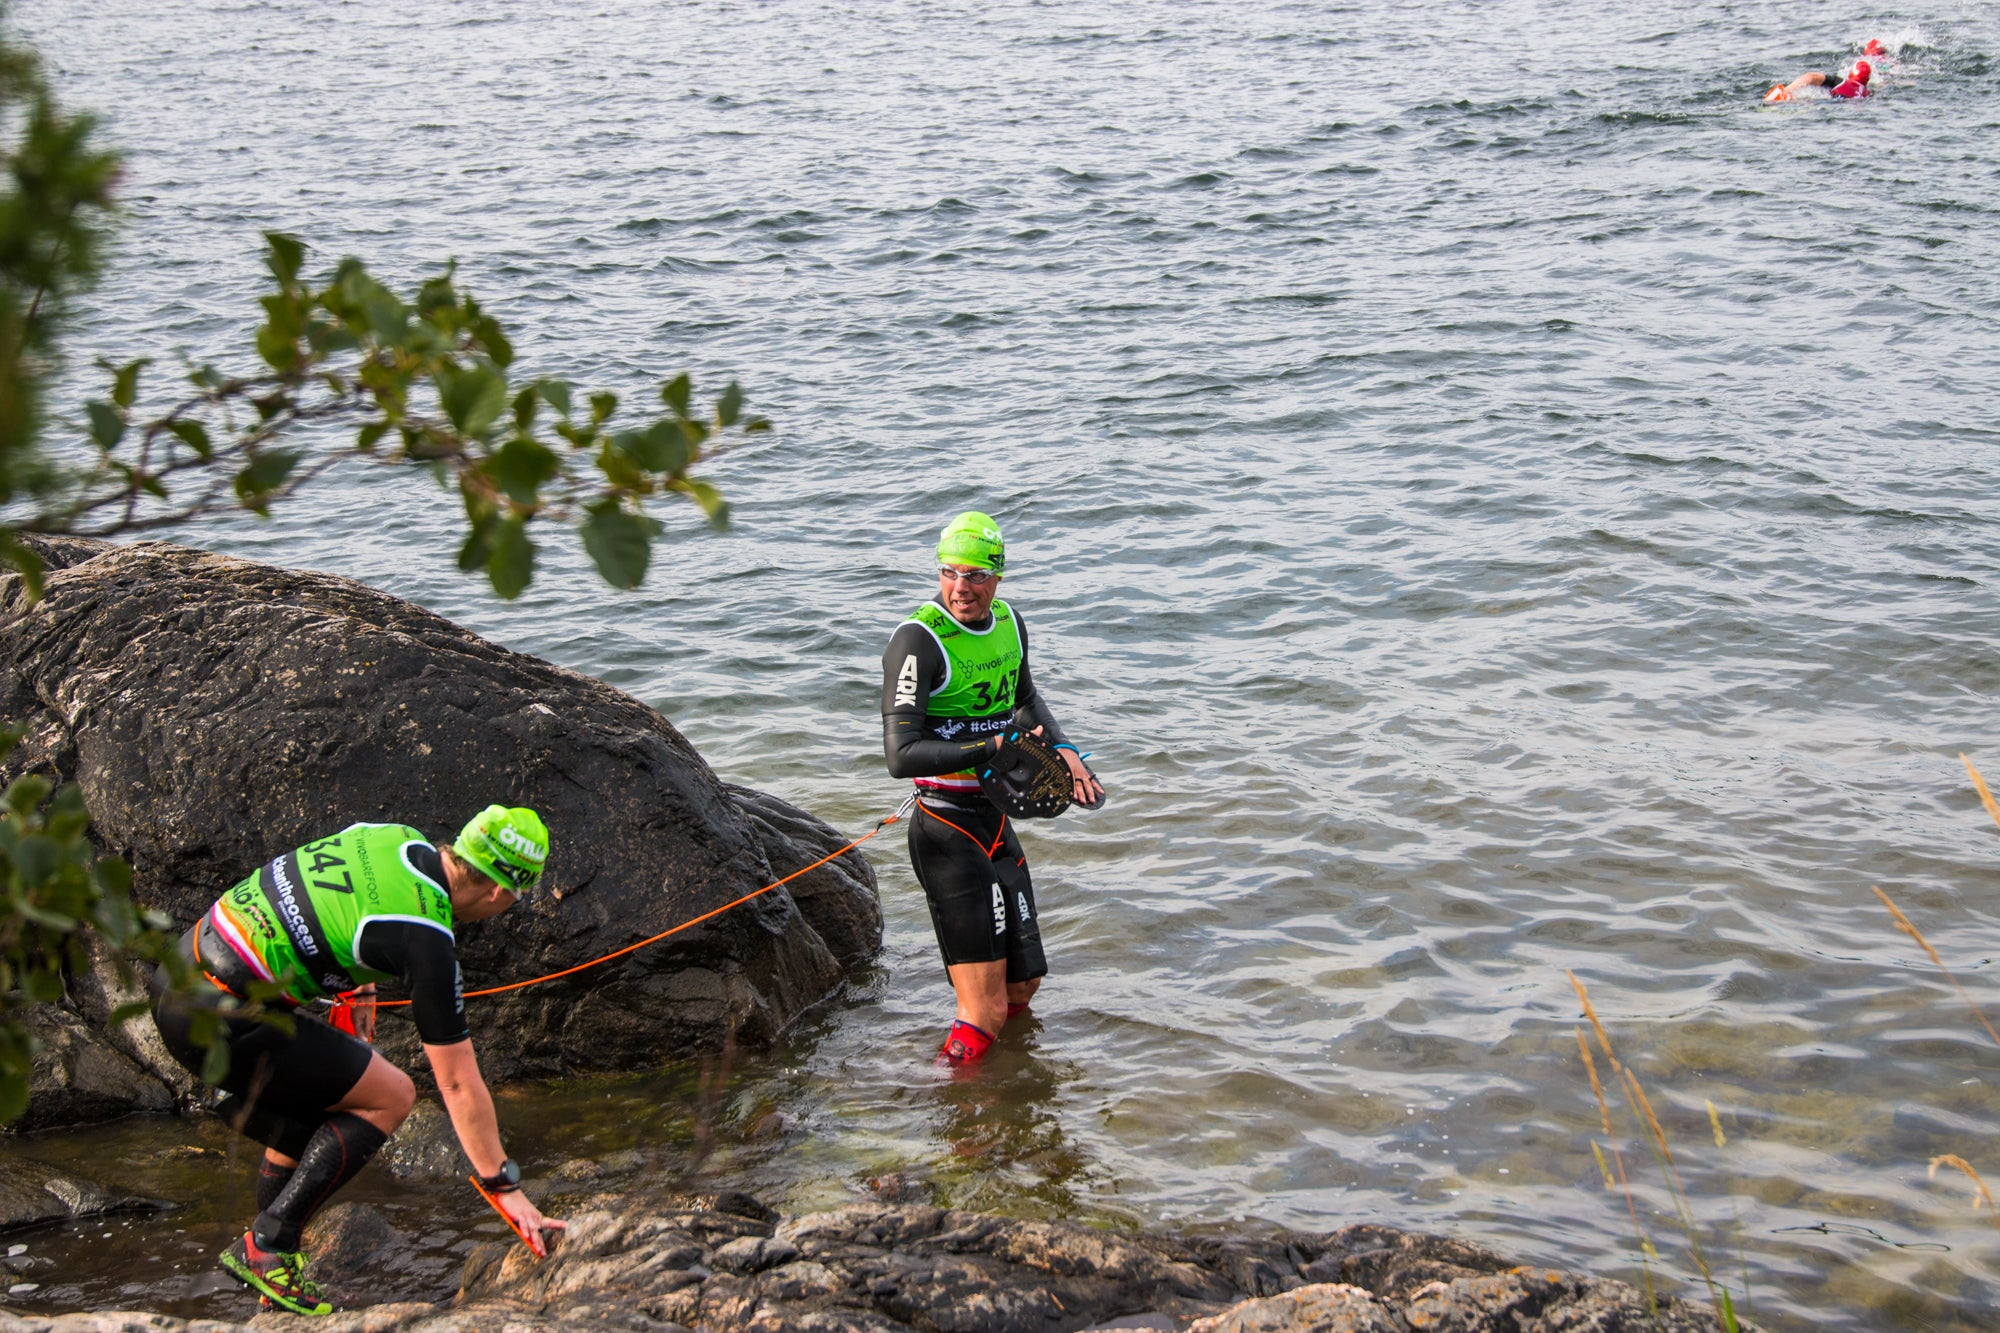 Getting back in the water - ÖTILLÖ Swimrun World Championship 2019